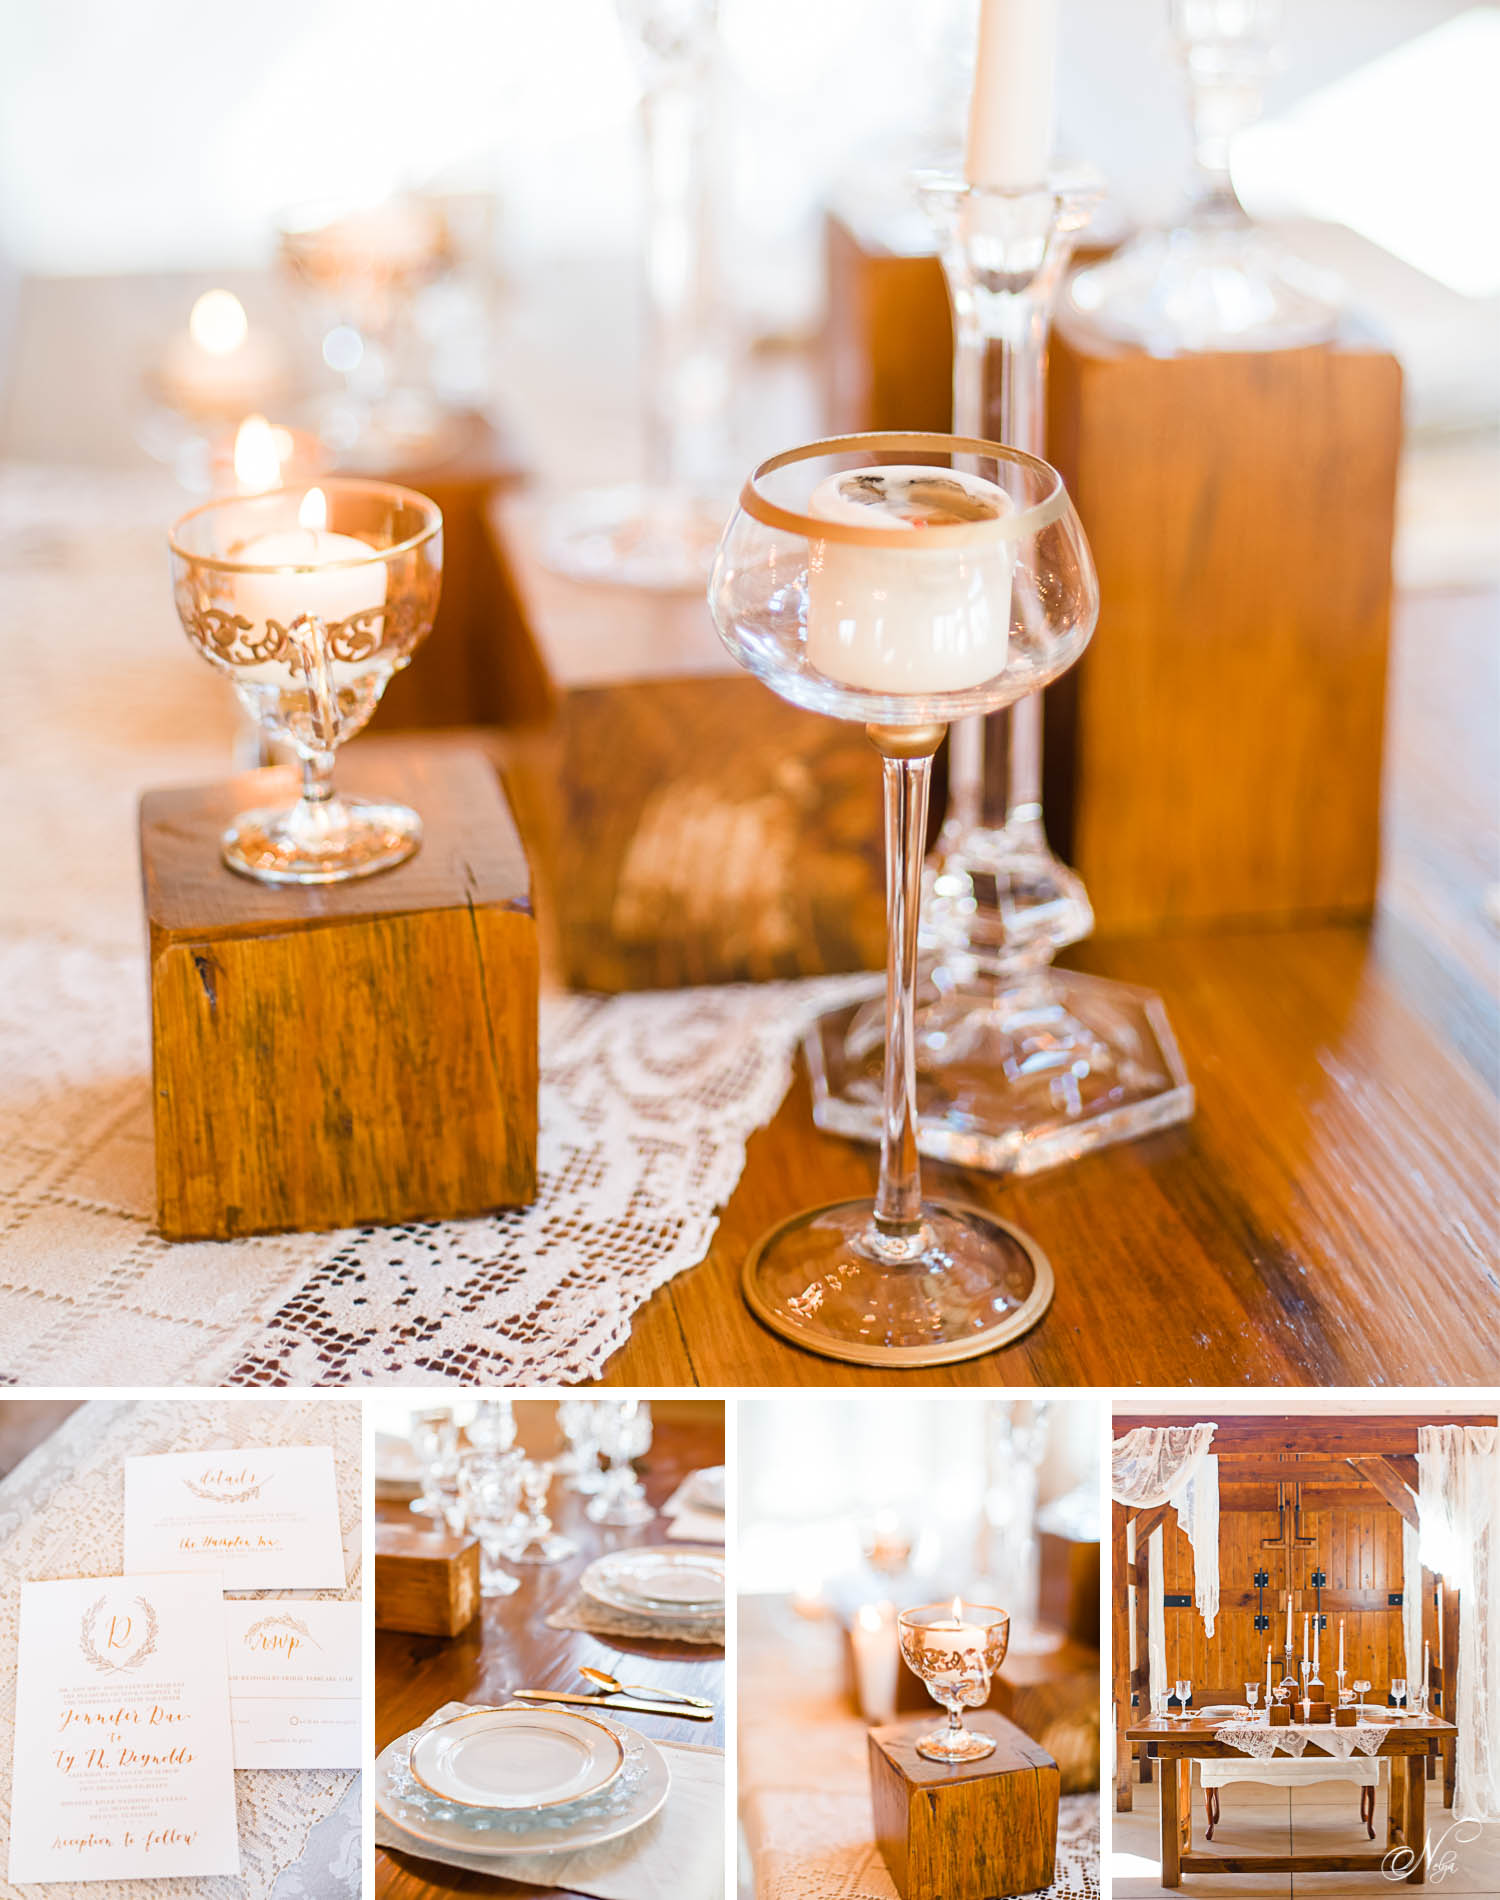 Vintage Elegance with Gold Accents on wood and lace table decor